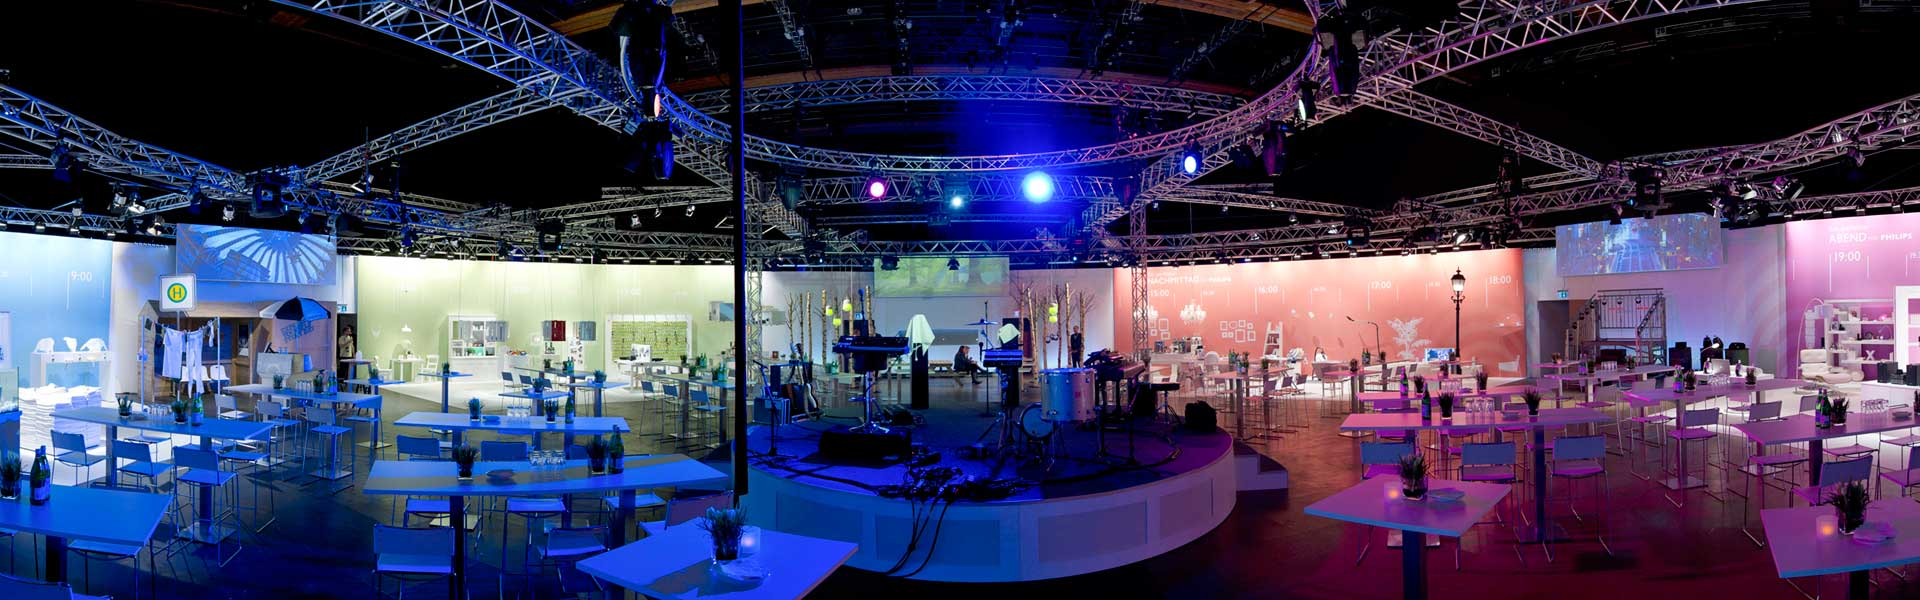 Top locations for any type of event